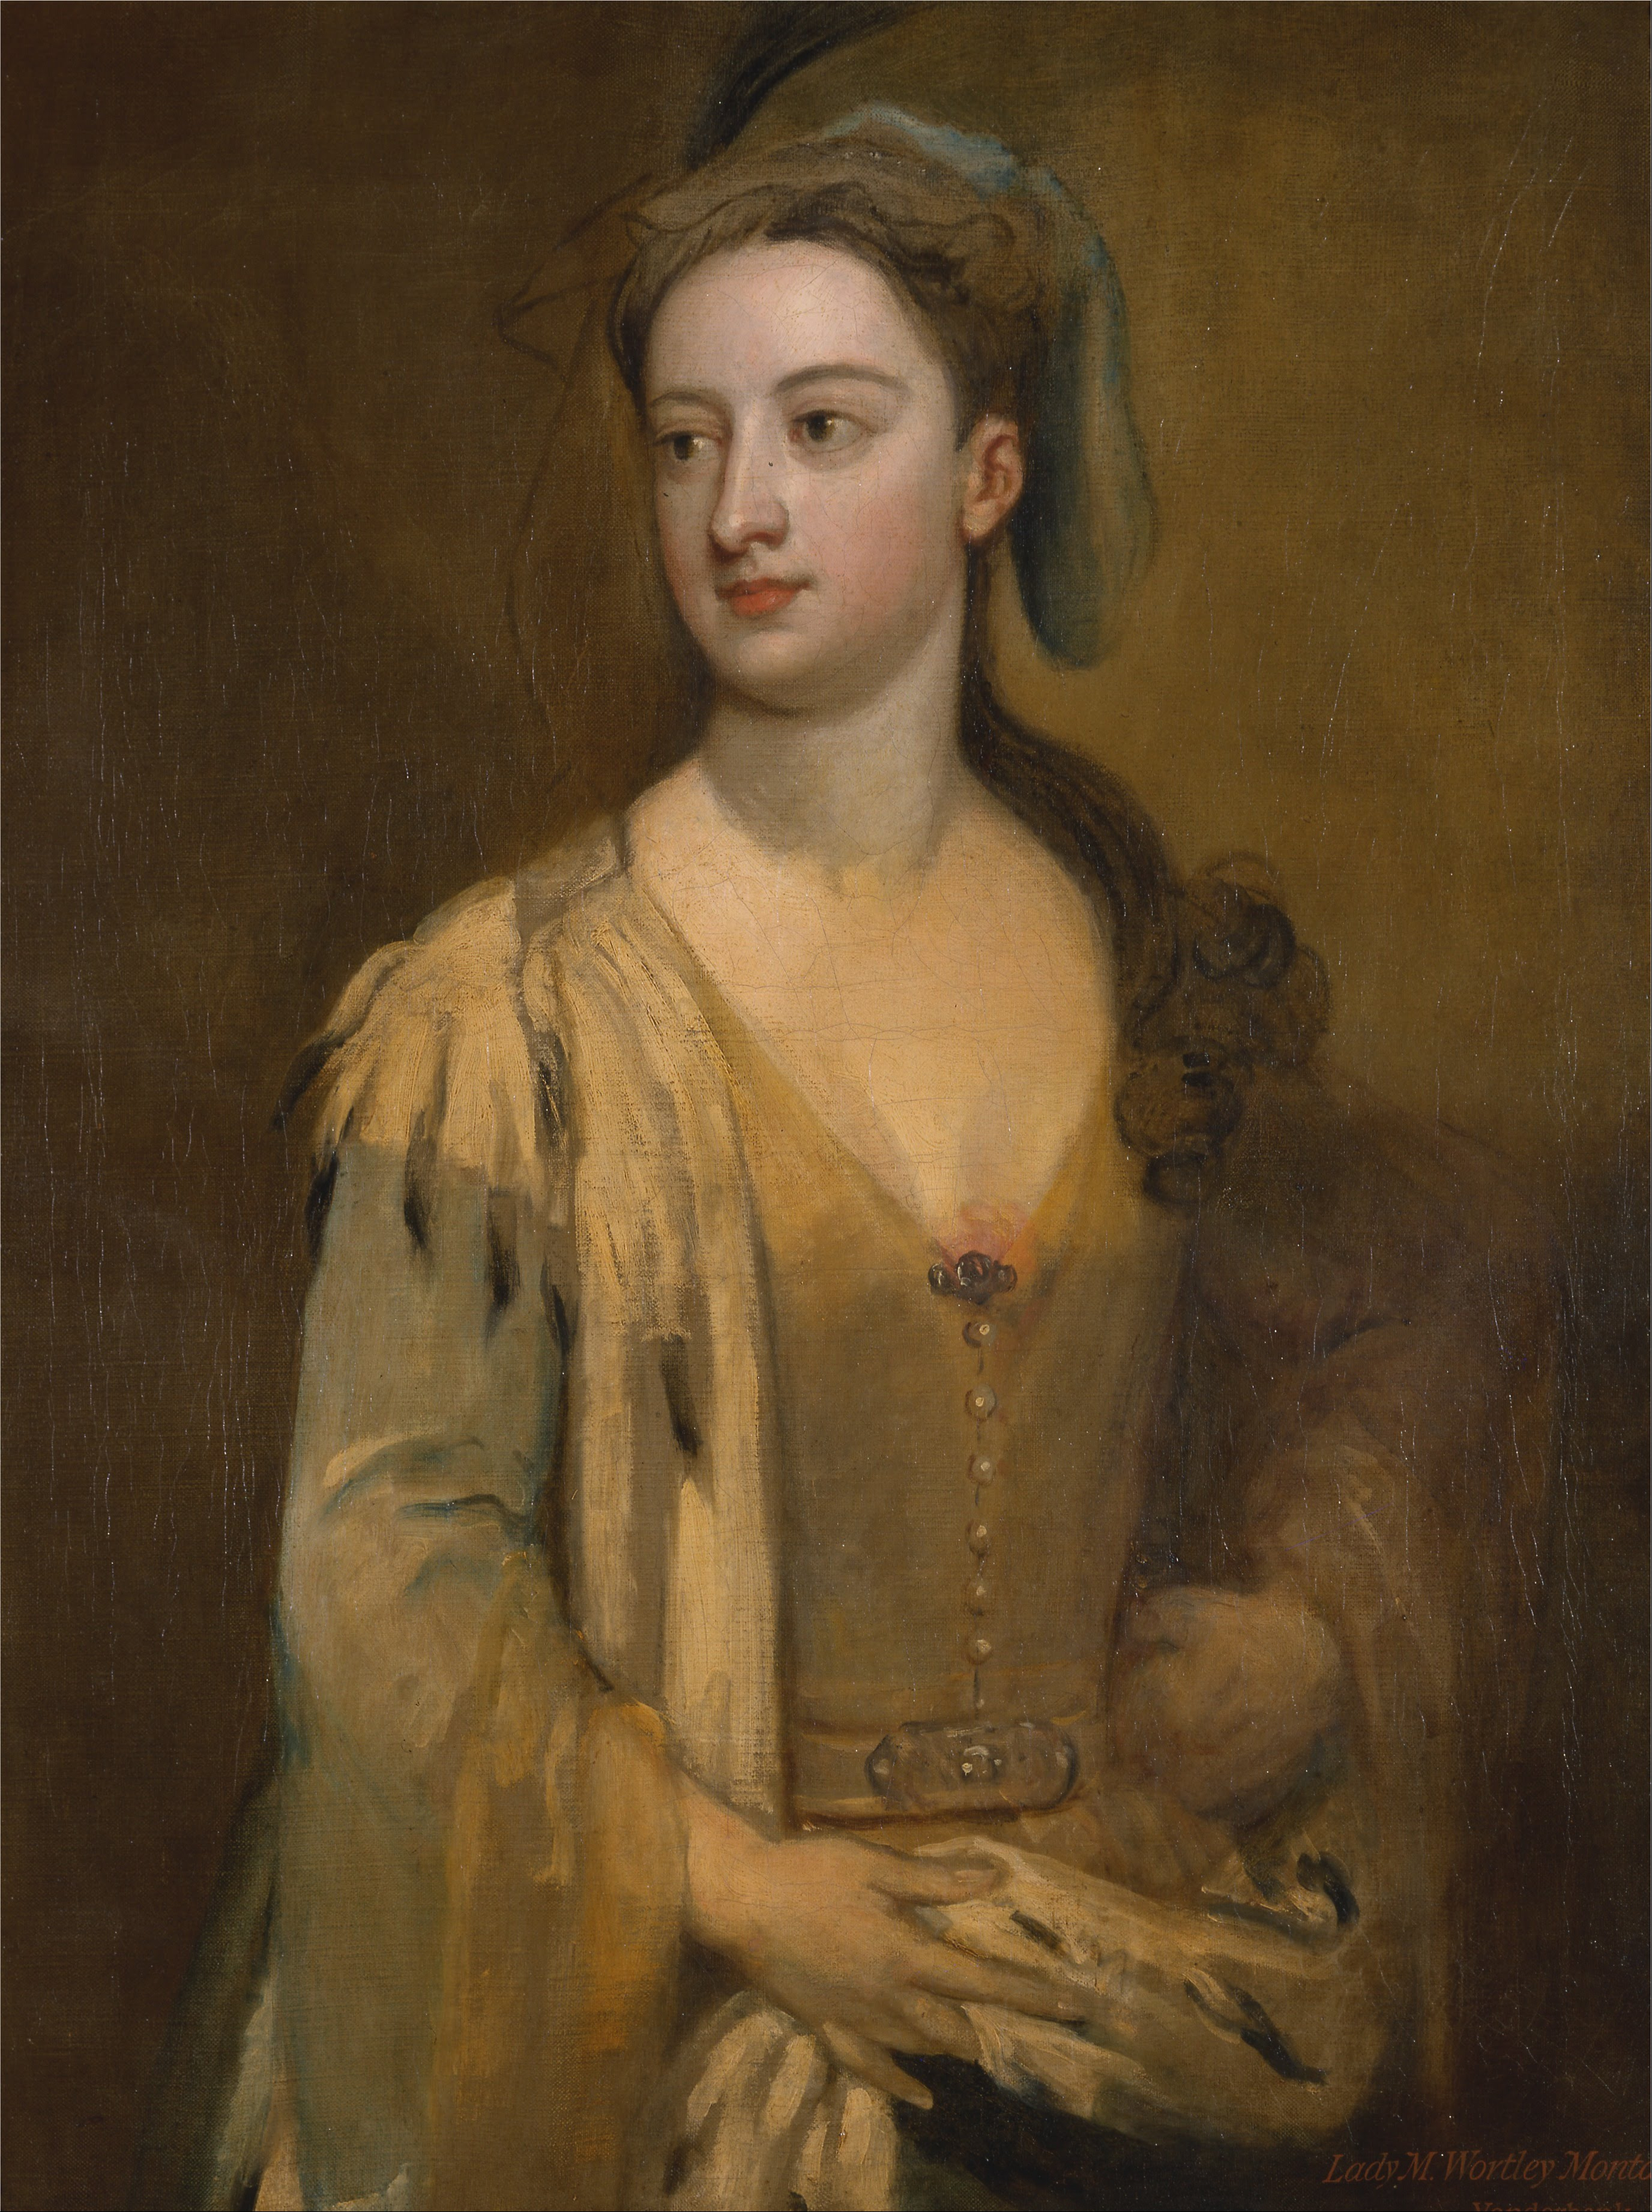 lady mary wortley montagu Best known as a letter writer, lady mary wortley montagu wrote verses all her life and frequently referred to herself as a.